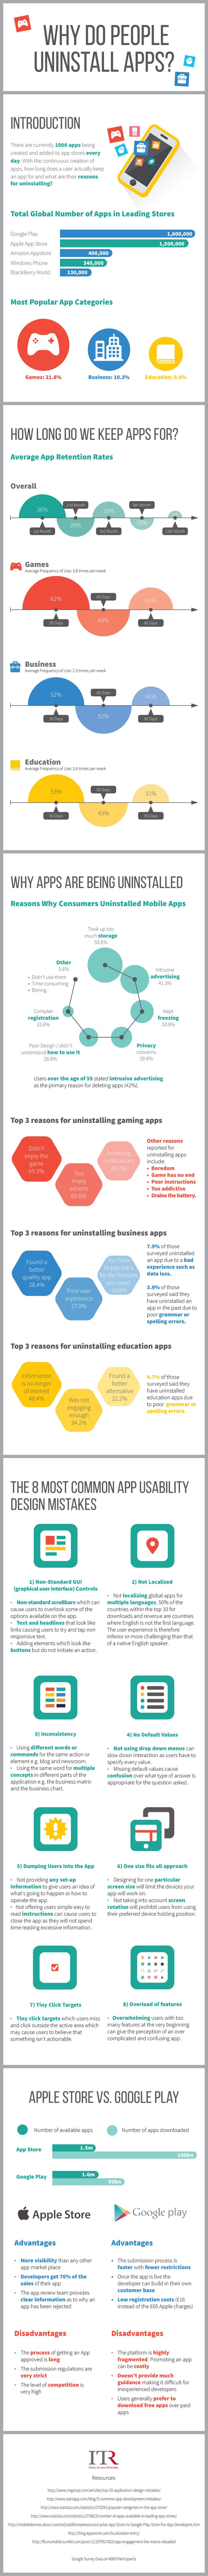 Interactive Multimedia: Why Do People Uninstall Apps?